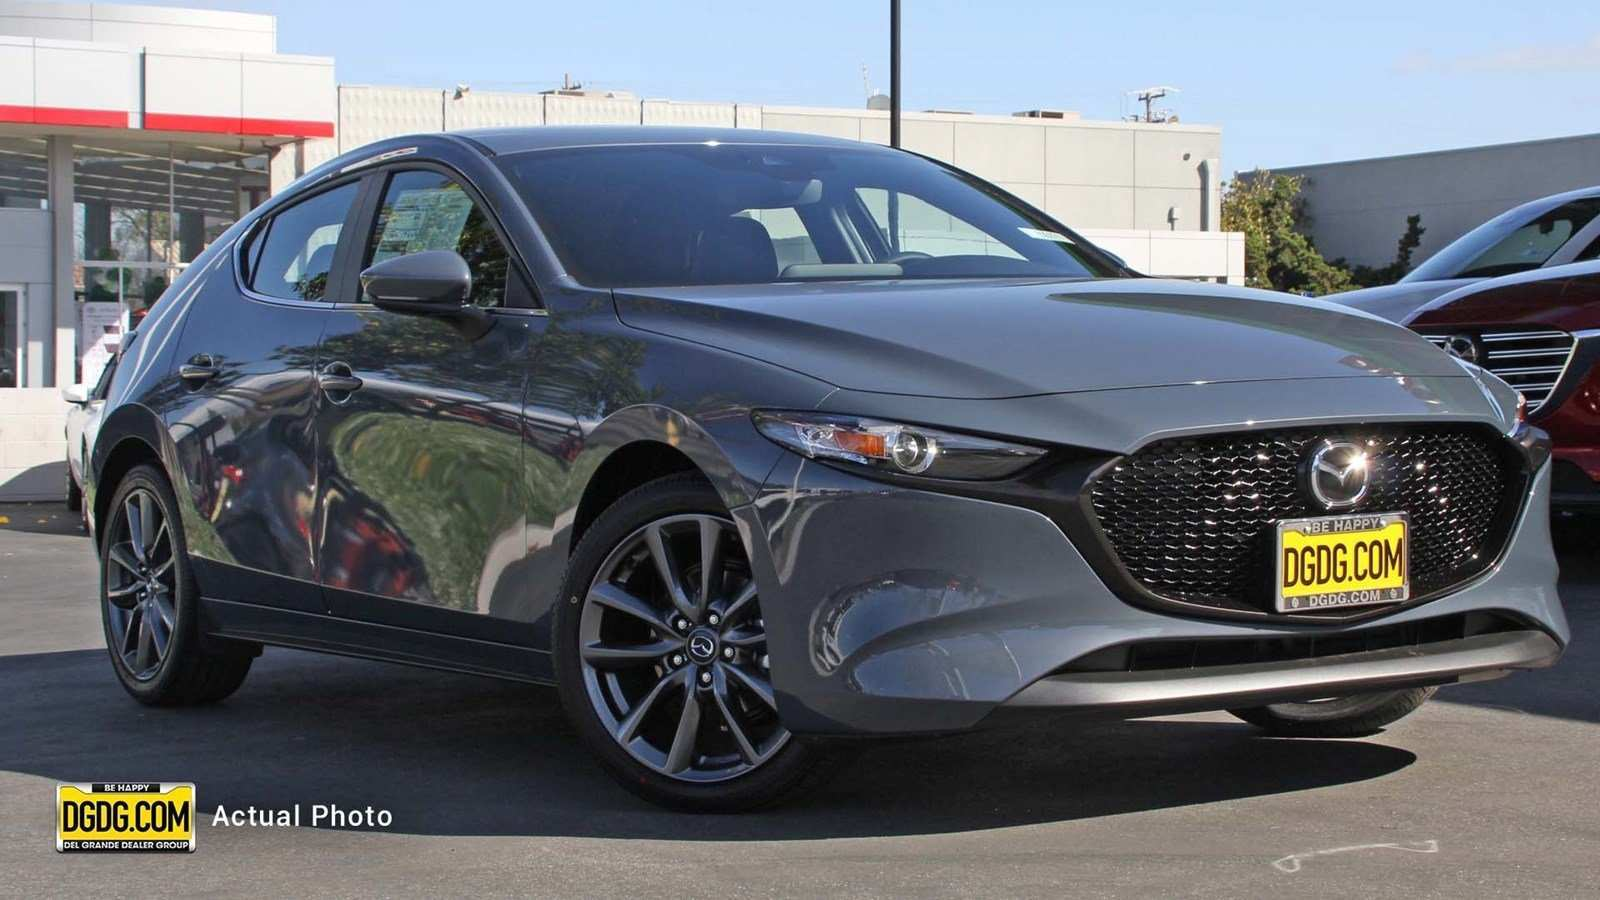 39 All New Cuando Sale El Mazda 3 2019 Performance And New Engine